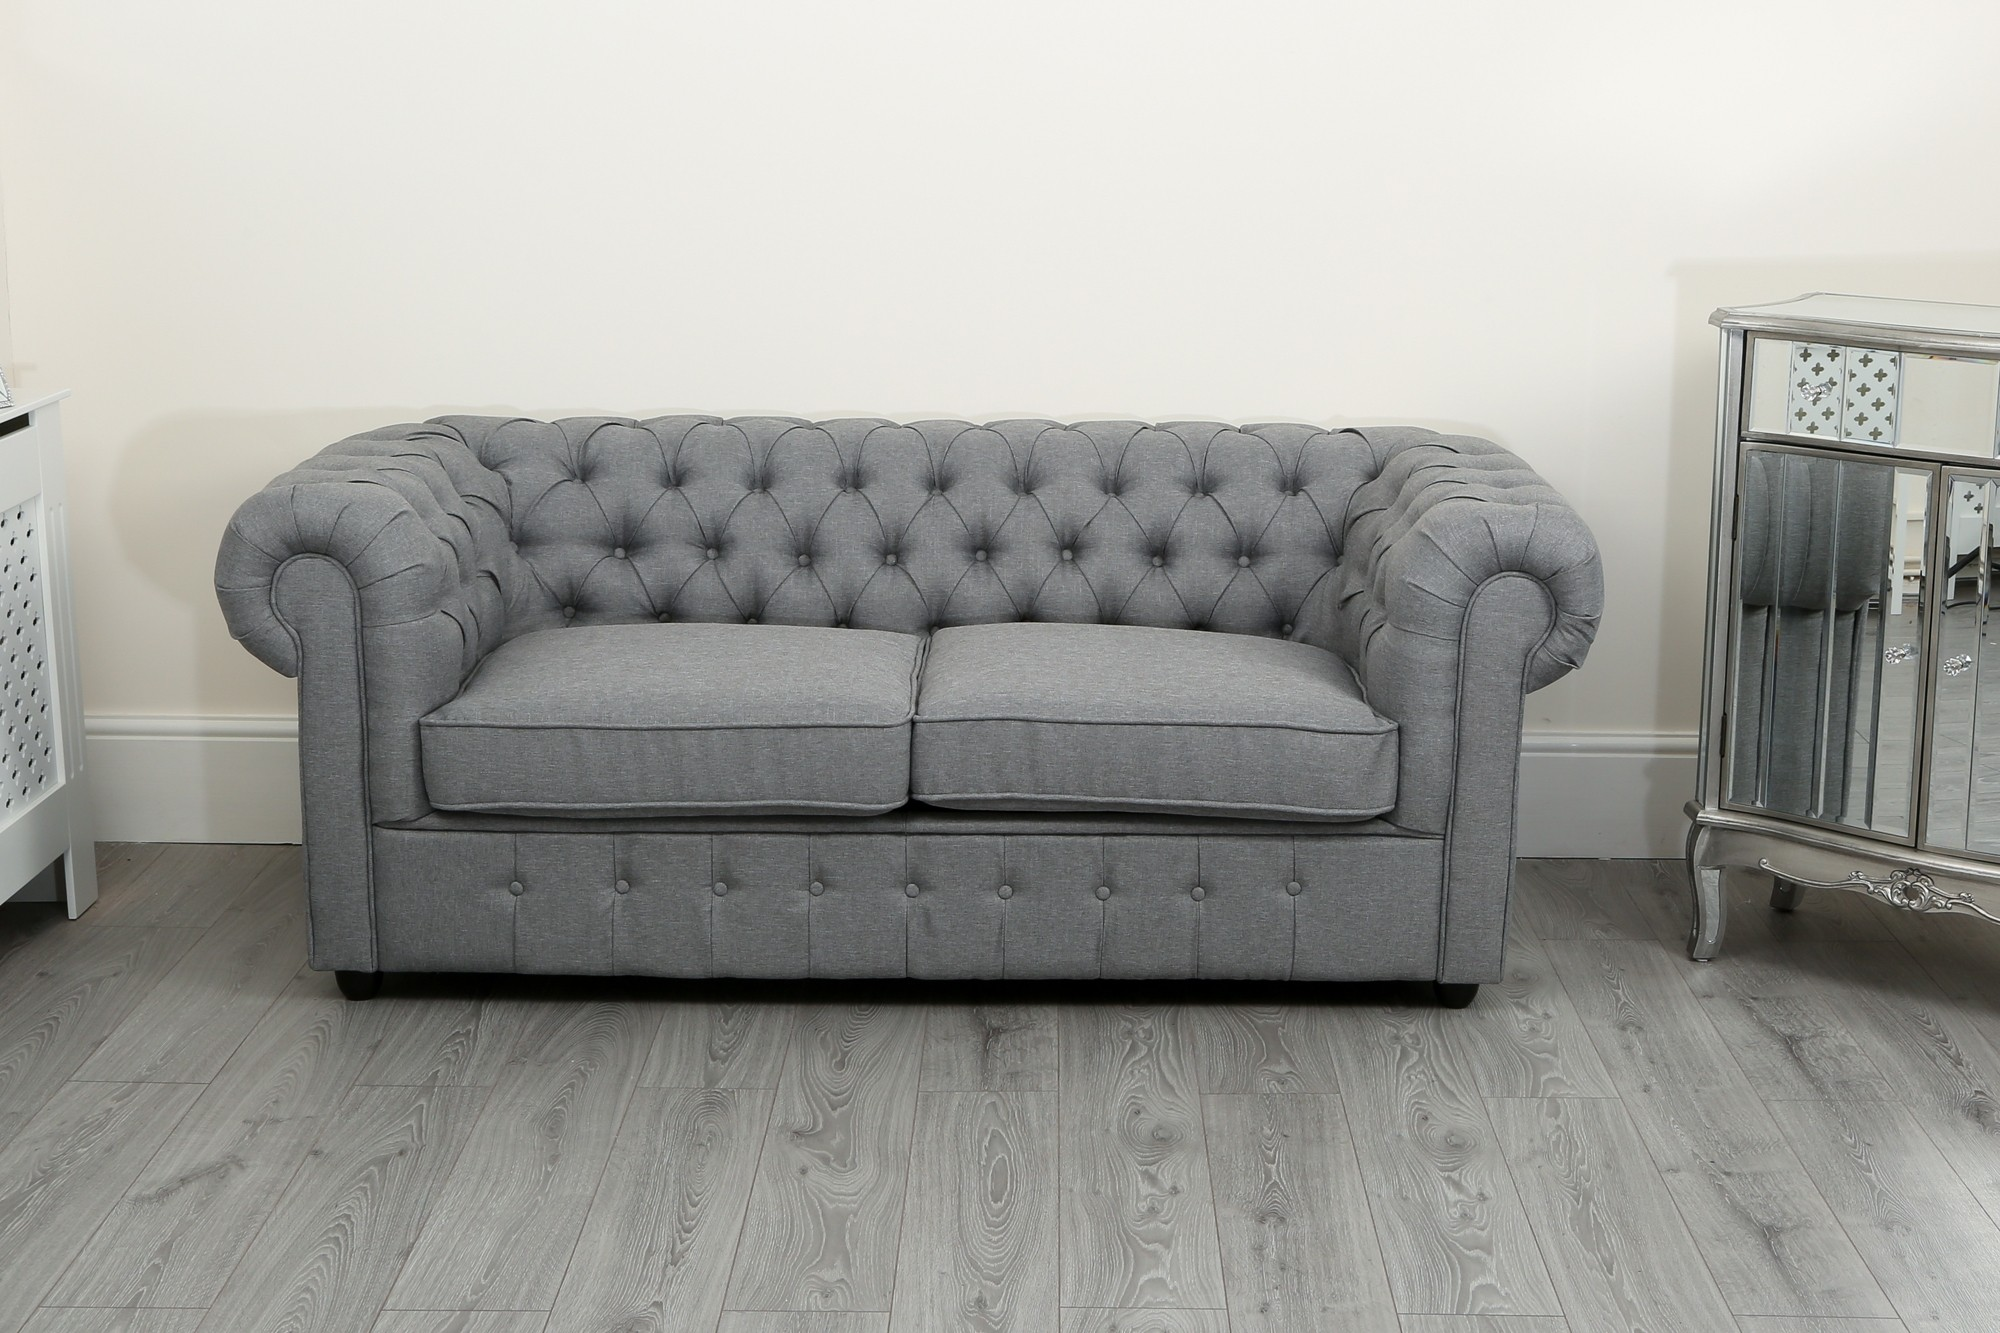 Chesterfield 3+2 Sofa Chesterfield Sofa Suite 3 2 And 1 Seater In Grey Linen